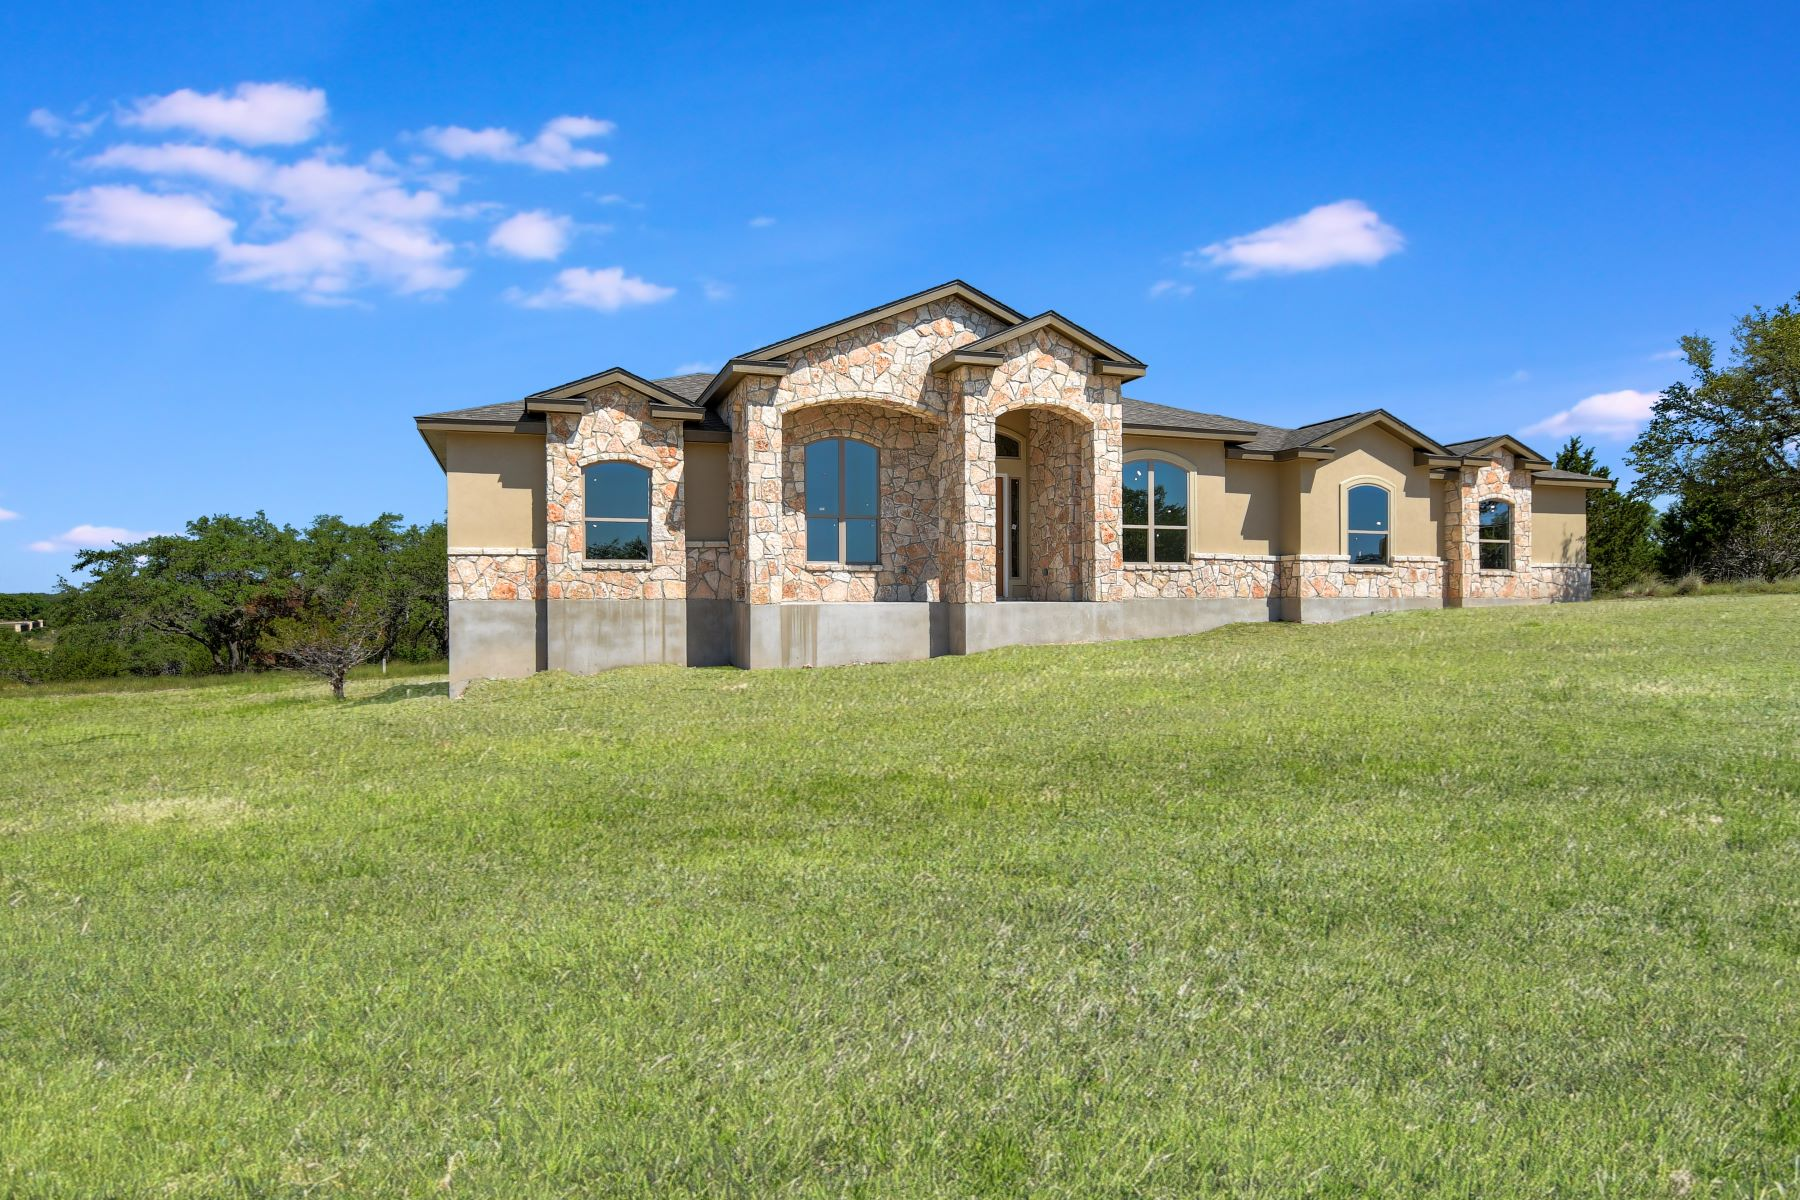 Single Family Homes for Sale at Stunning New Build in Mystic Shores 125 Finch Place Spring Branch, Texas 78070 United States